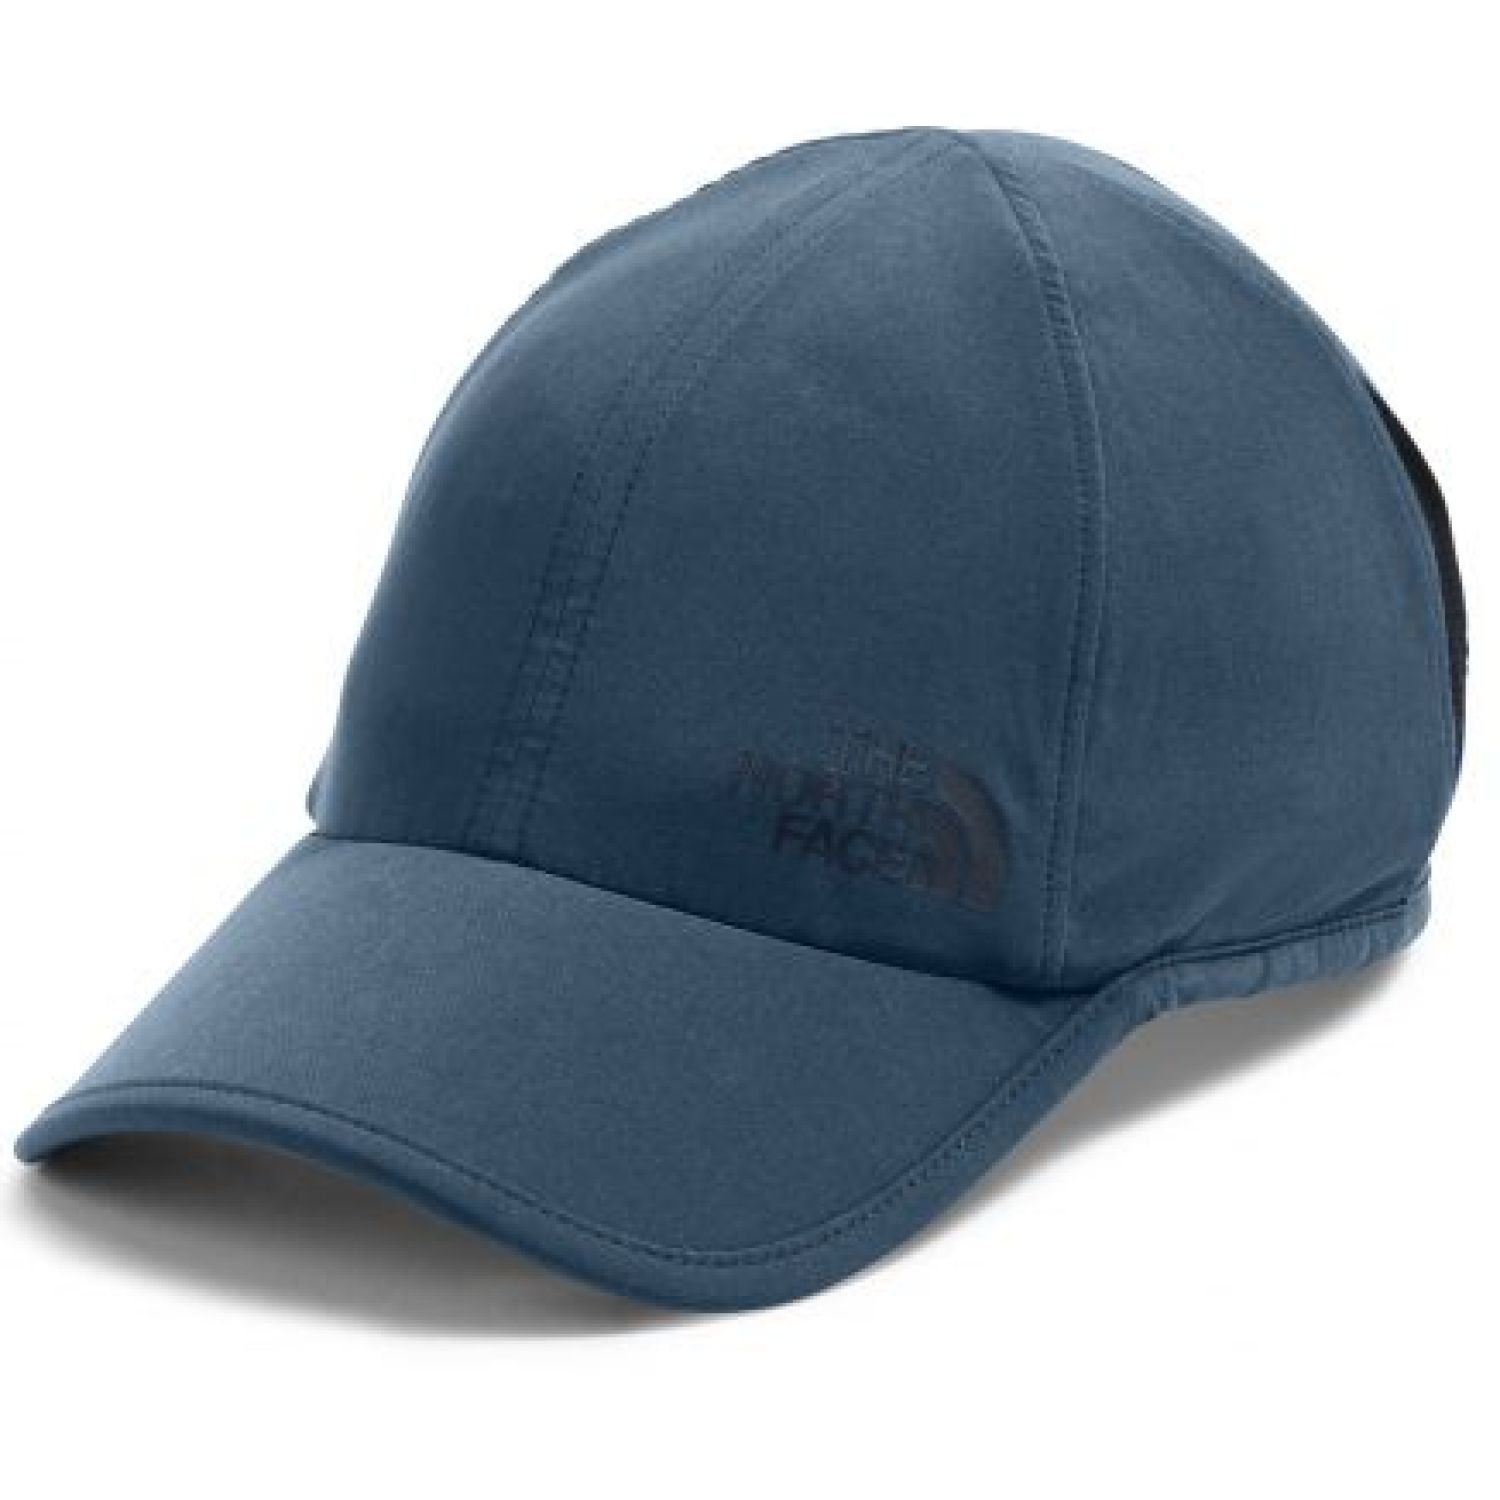 The North Face Breakaway Hat Navy Gorras de béisbol